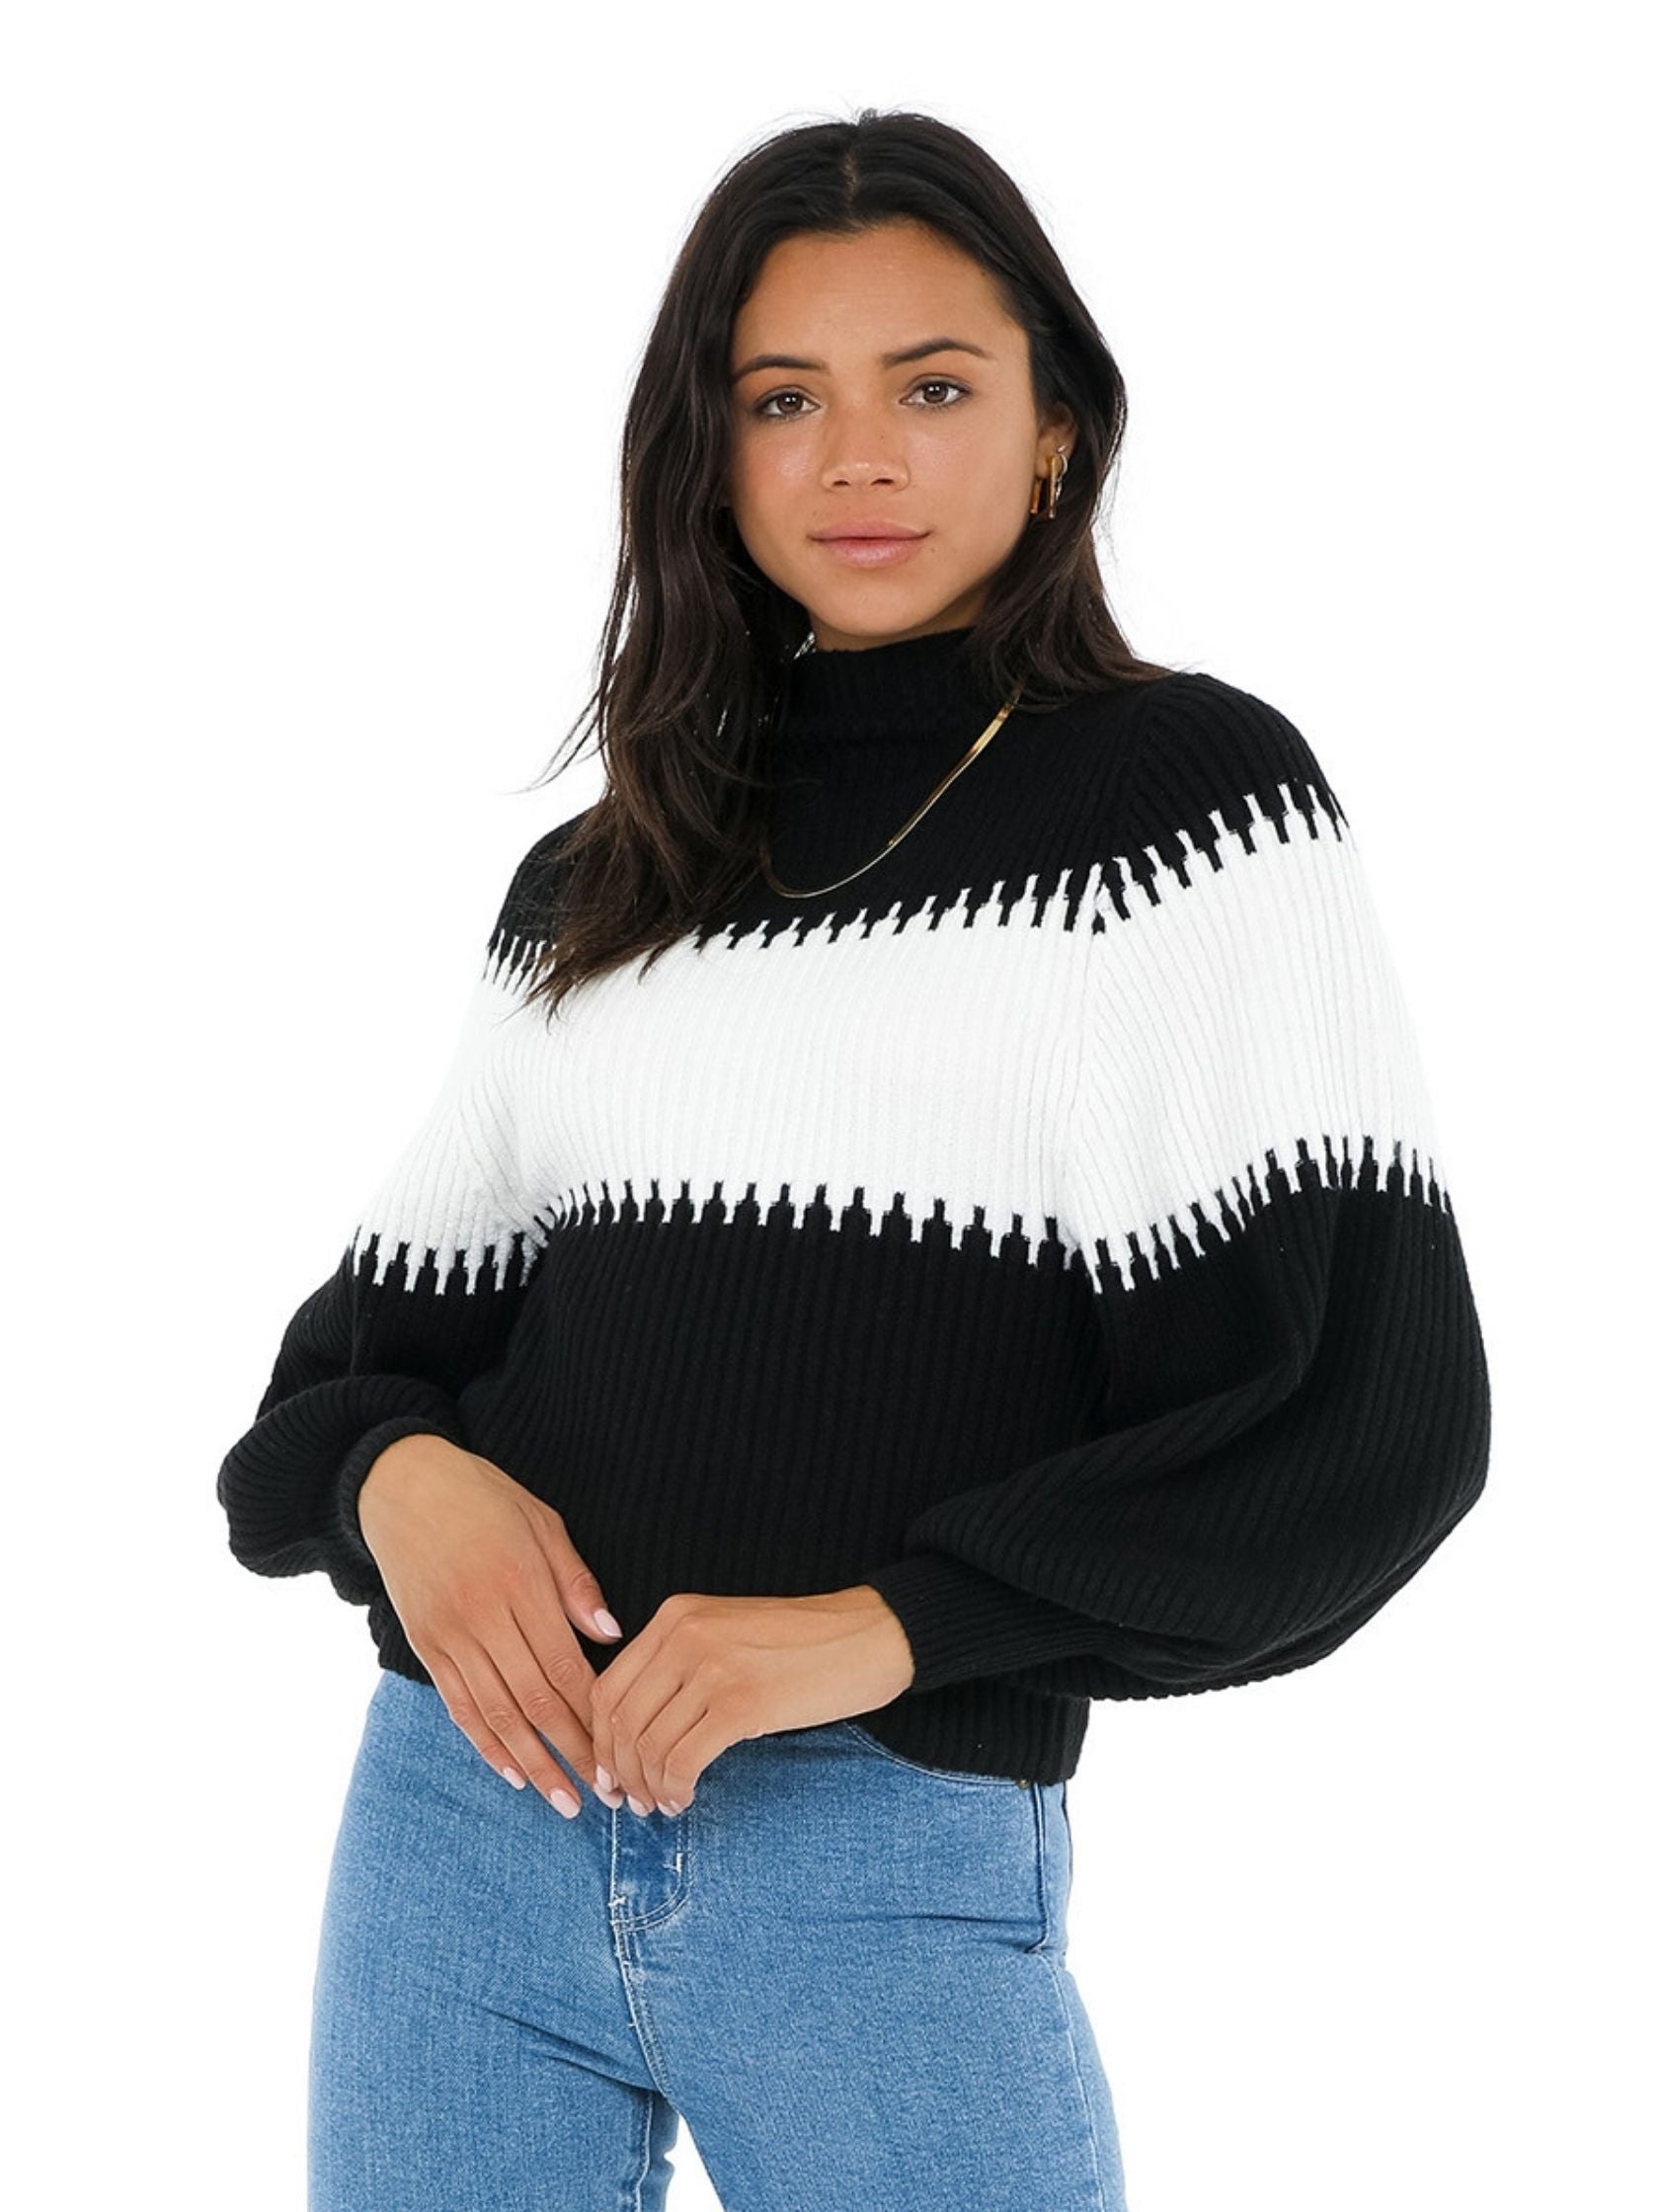 Woman wearing a sweater rental from French Connection called Sofia Knits Balloon Sleeve Jumper